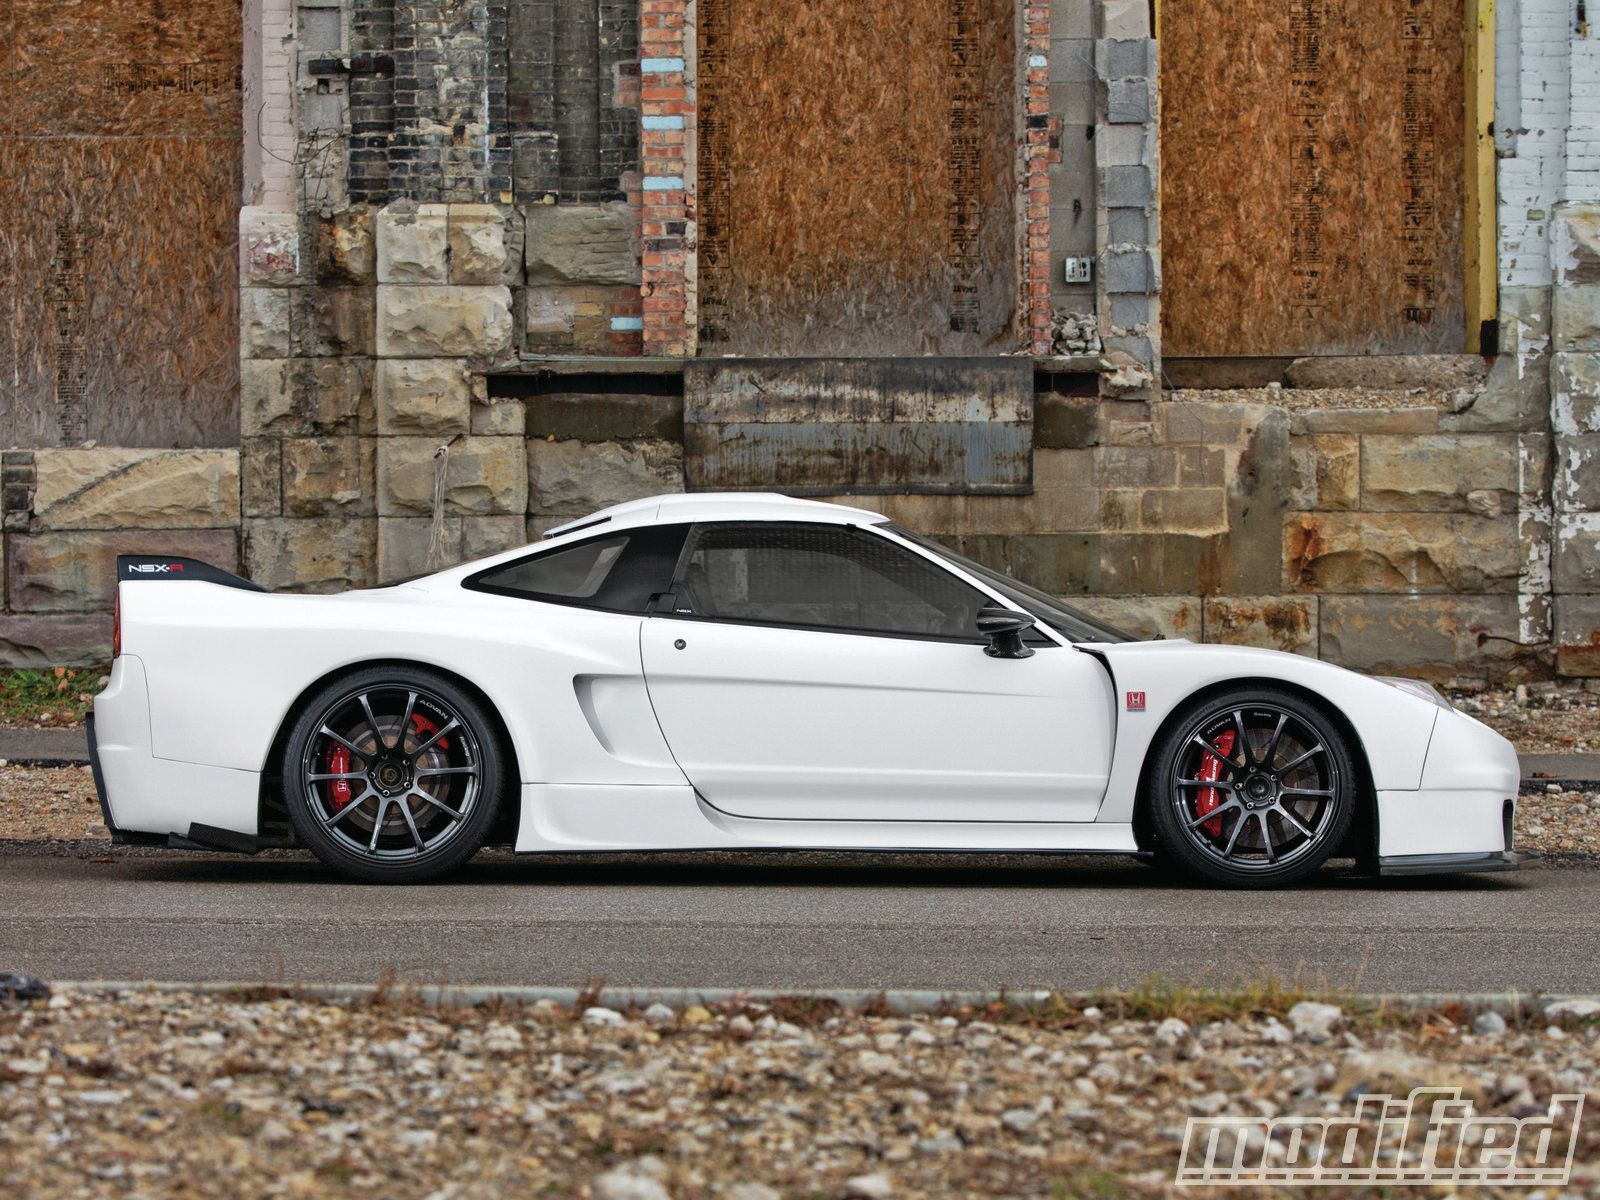 Acura Nsx 1991 White: 1991 Acura Nsx Nsx Anew Modified Magazine,Car